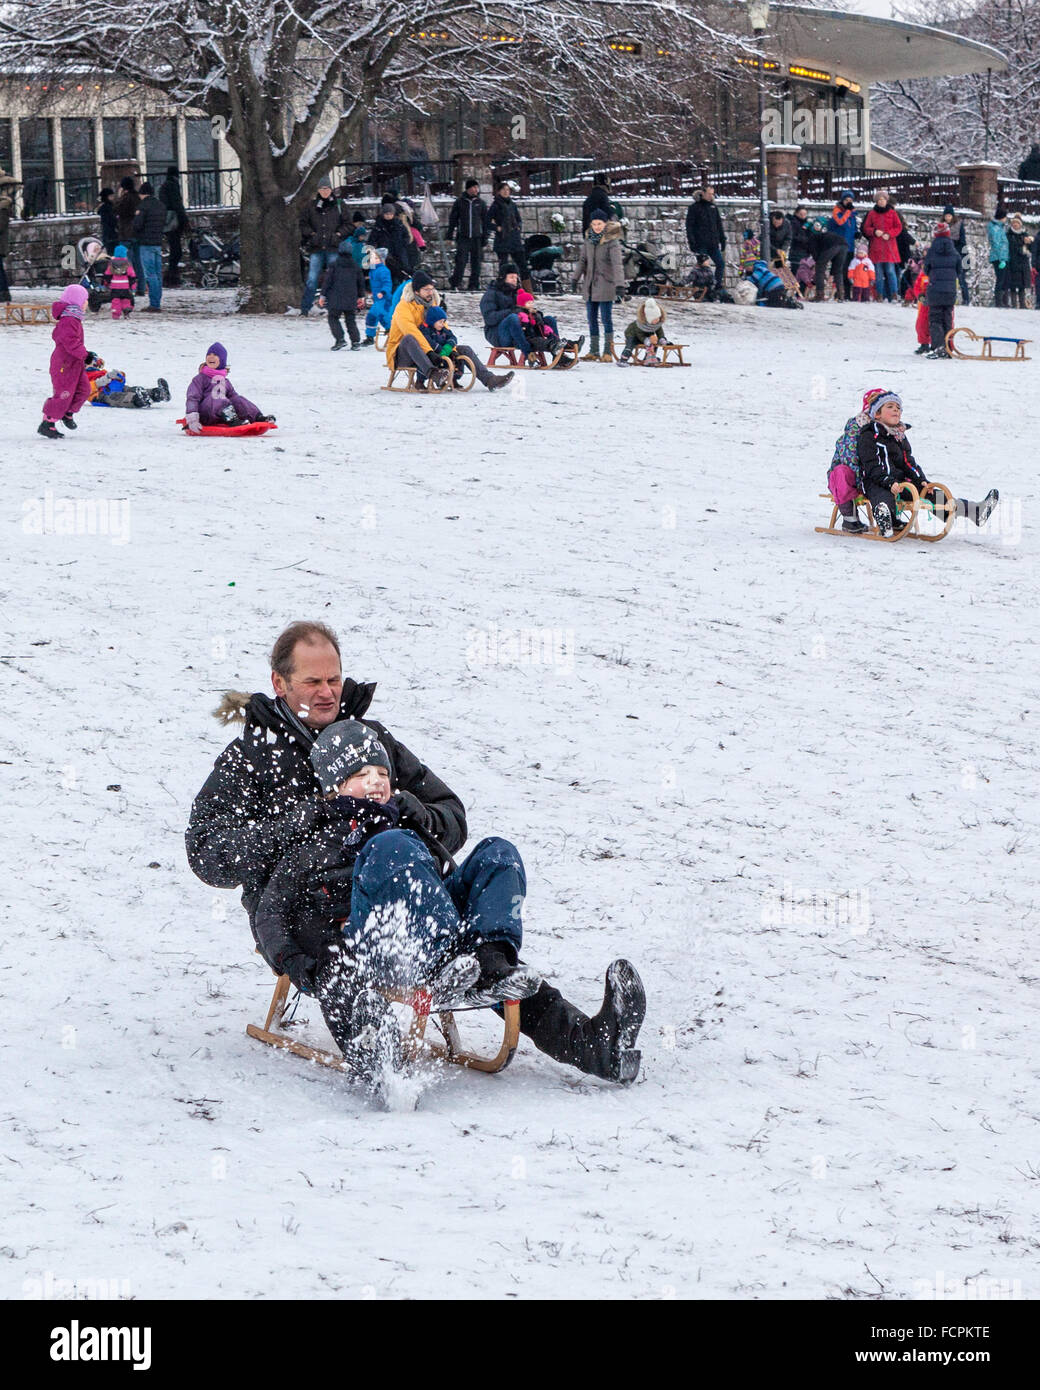 Father and child sledding on a snowy slope in a public park in winter, Berlin, Mitte, Volkspark am Weinbergsweg, - Stock Image